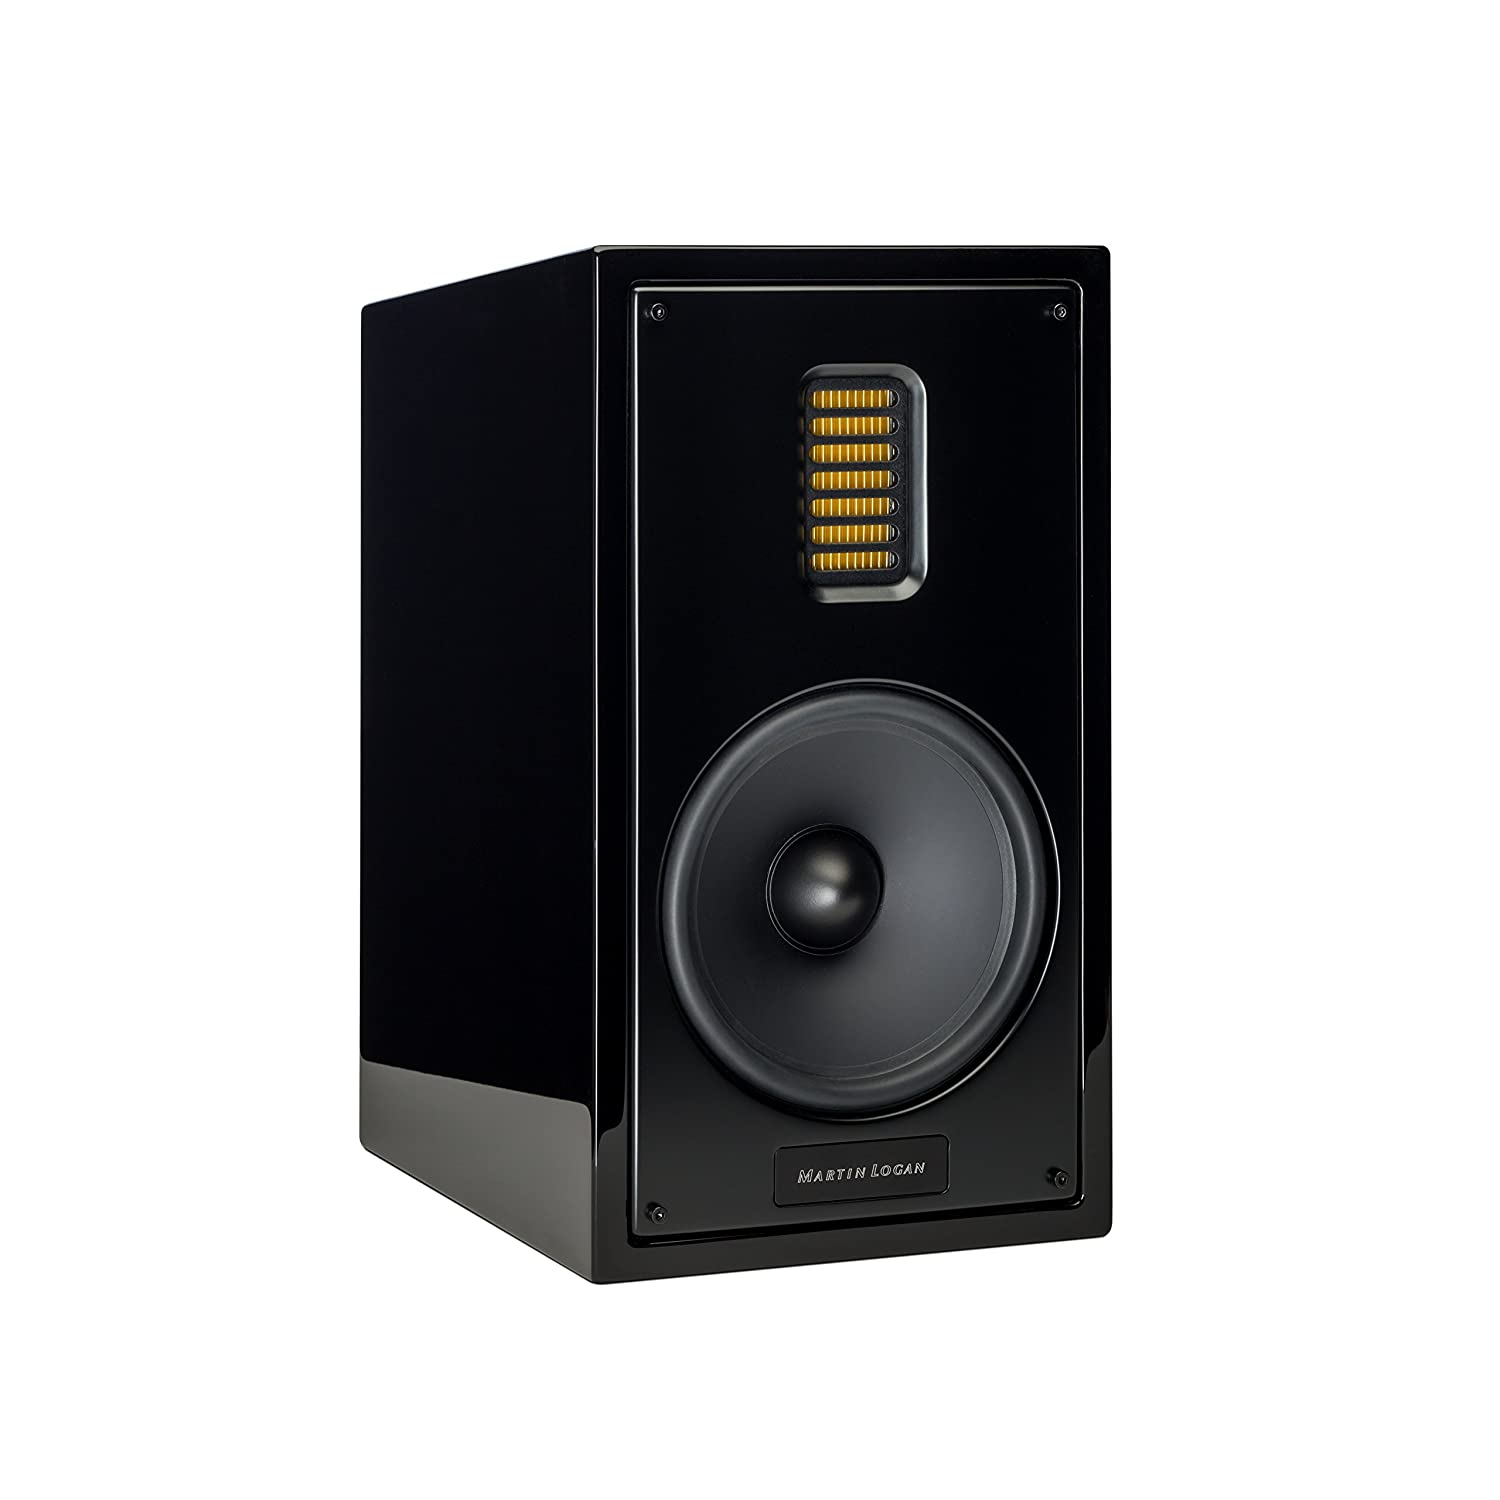 sub rear stereo blog many so blind when surround center side front rp bookshelf choose s klipsch review system woofers we need are purchasing page speakers there martin logan and to ray theater advantage home a